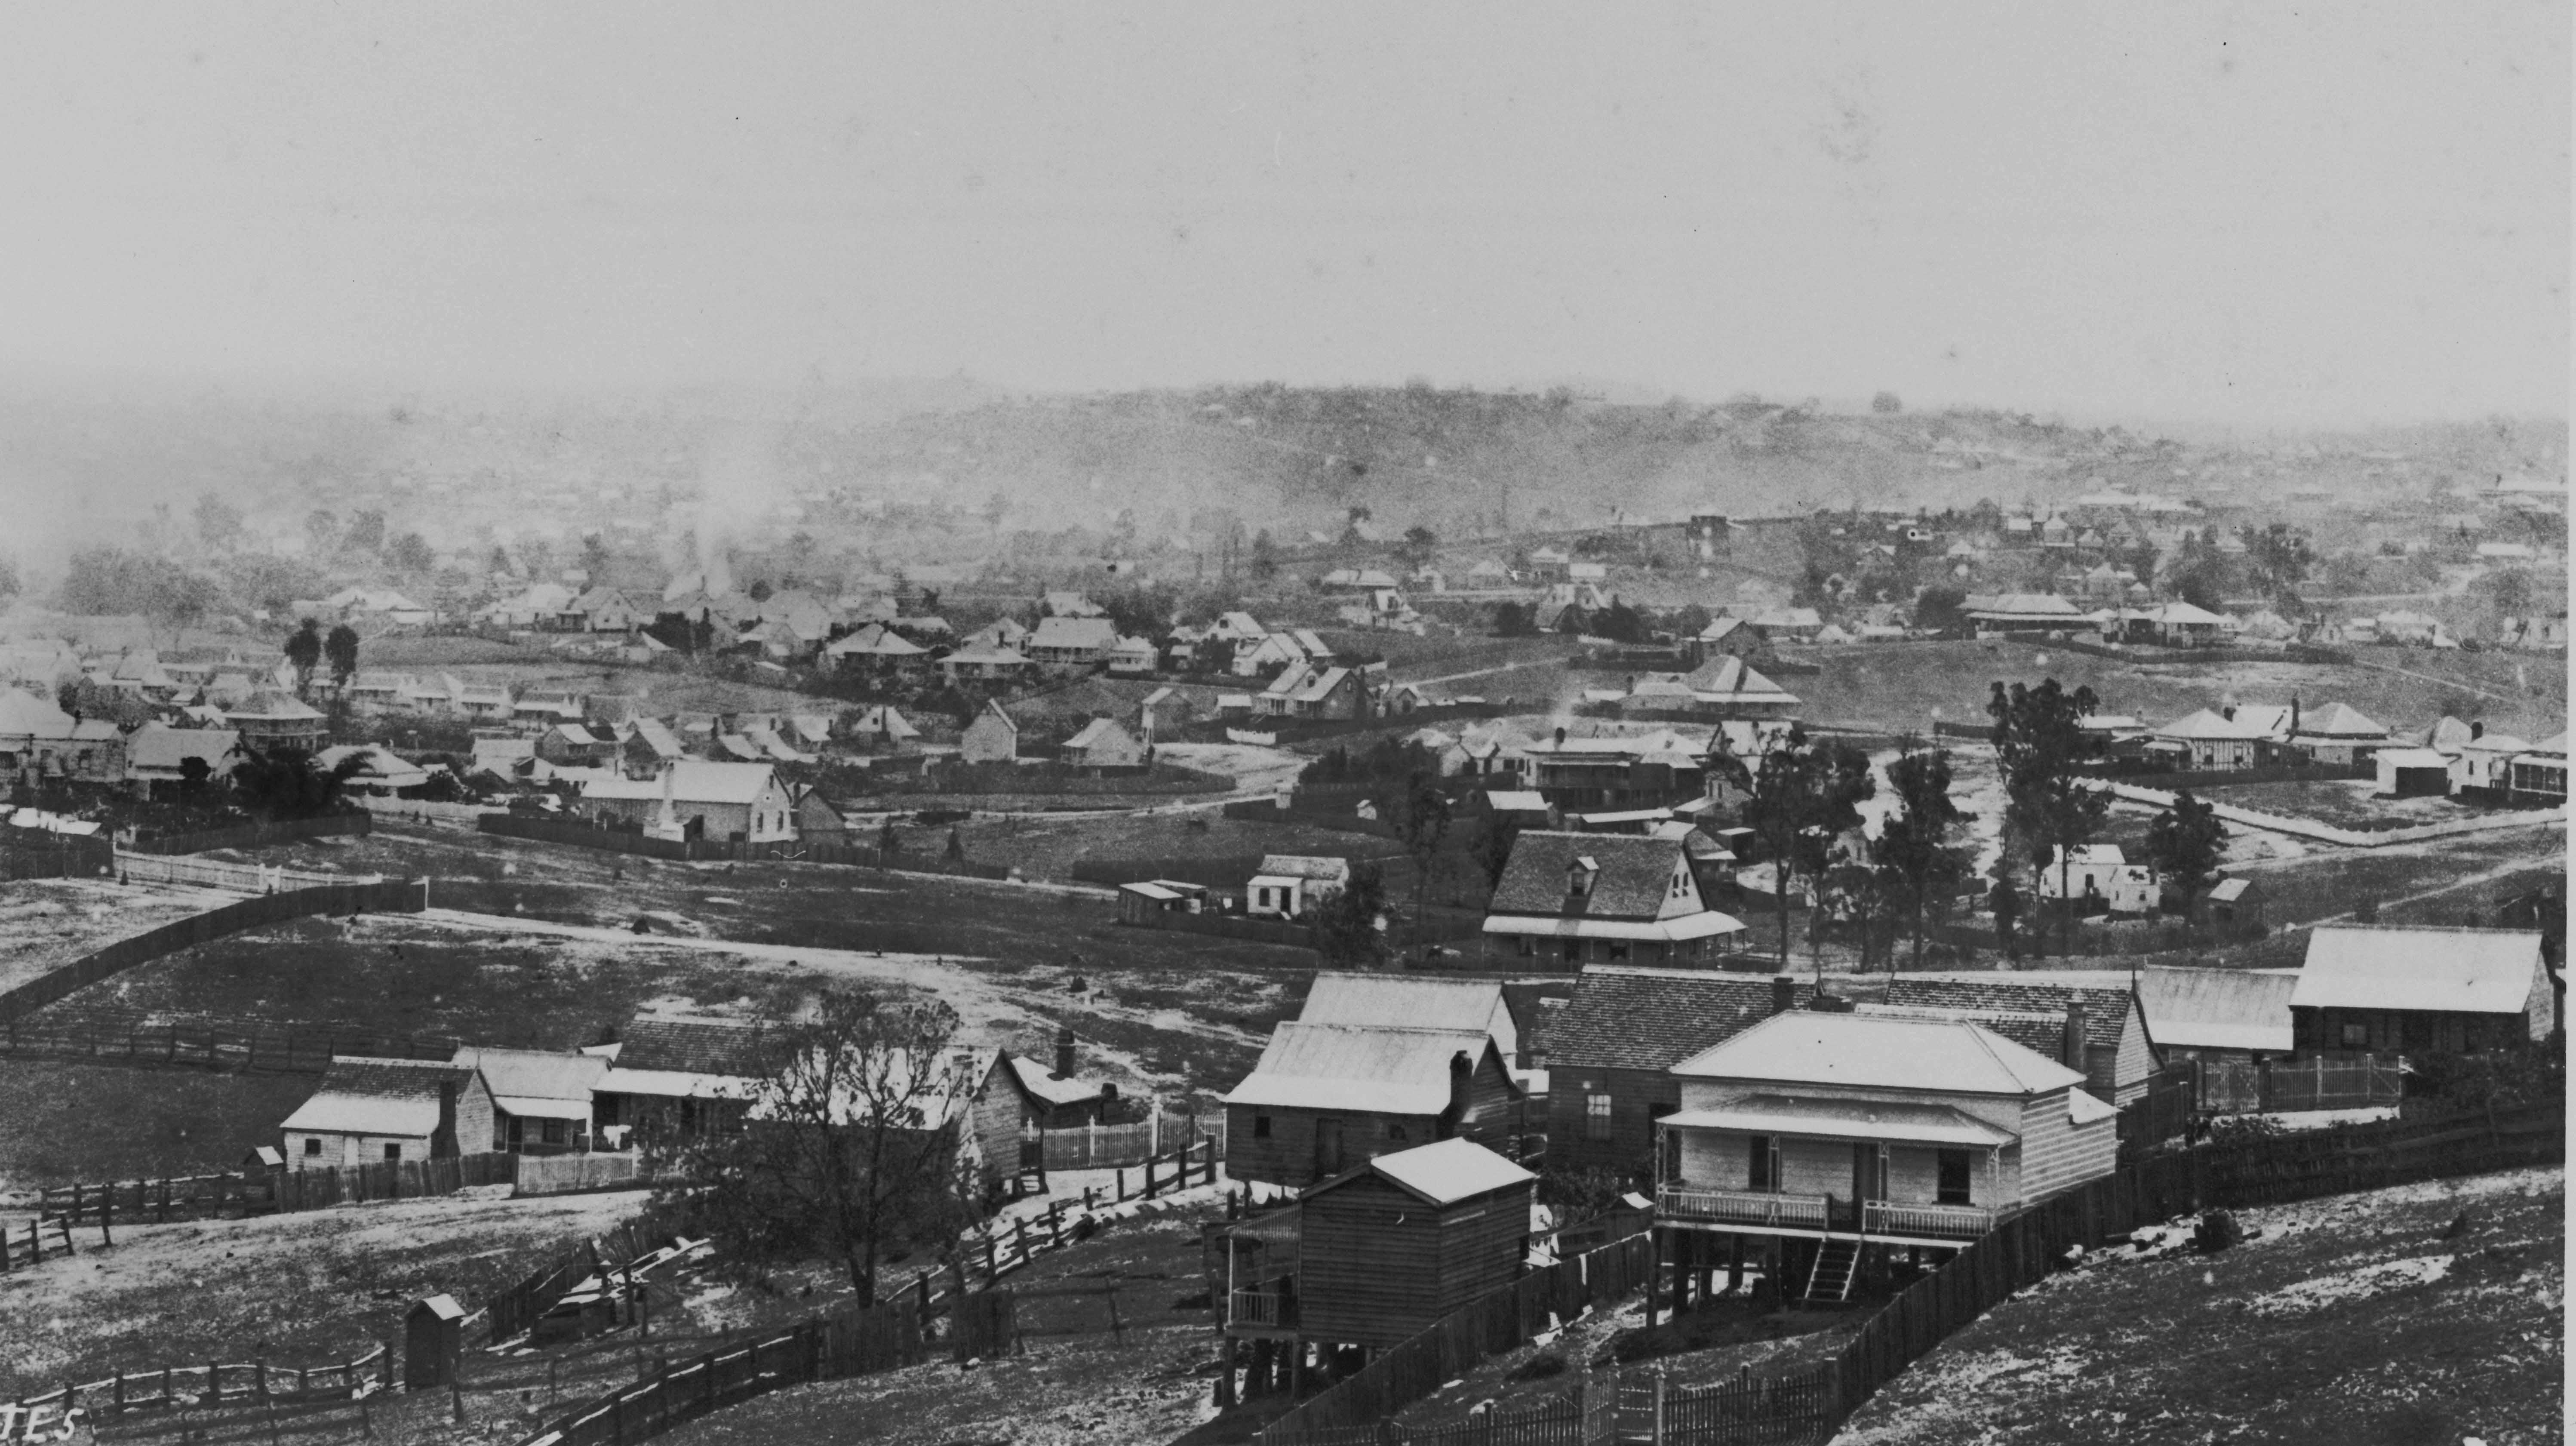 west end ca 1894 from highgate hill